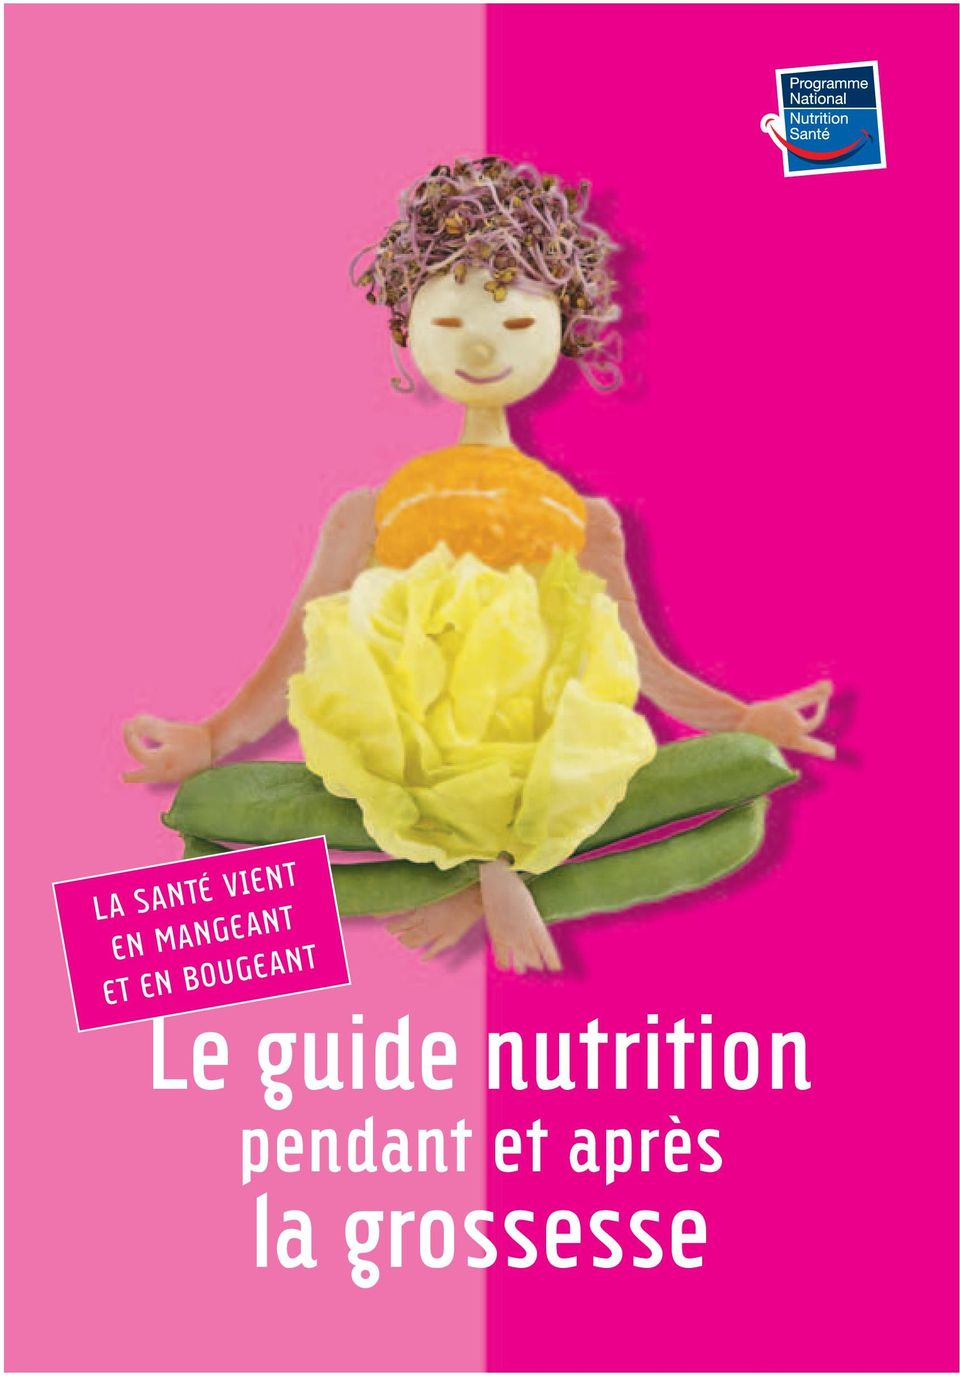 BOUGEANT Le guide